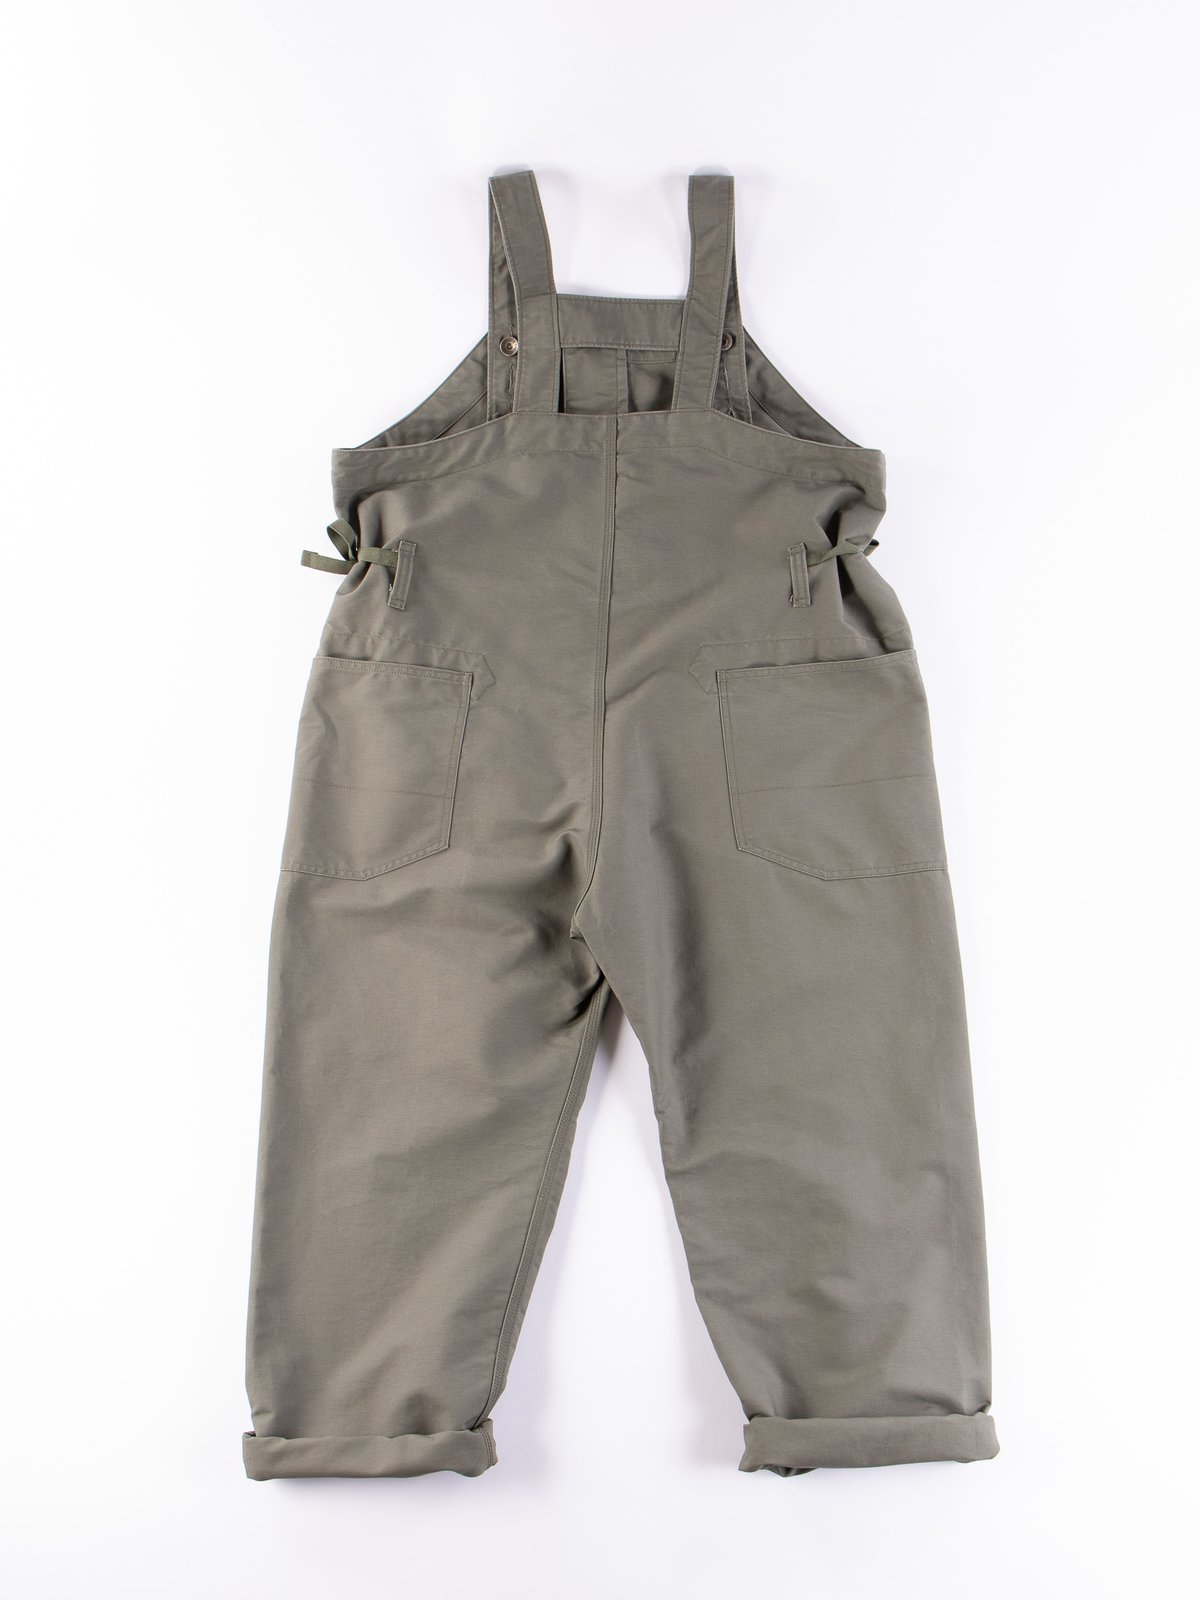 Olive Cotton Double Cloth Waders - Image 6